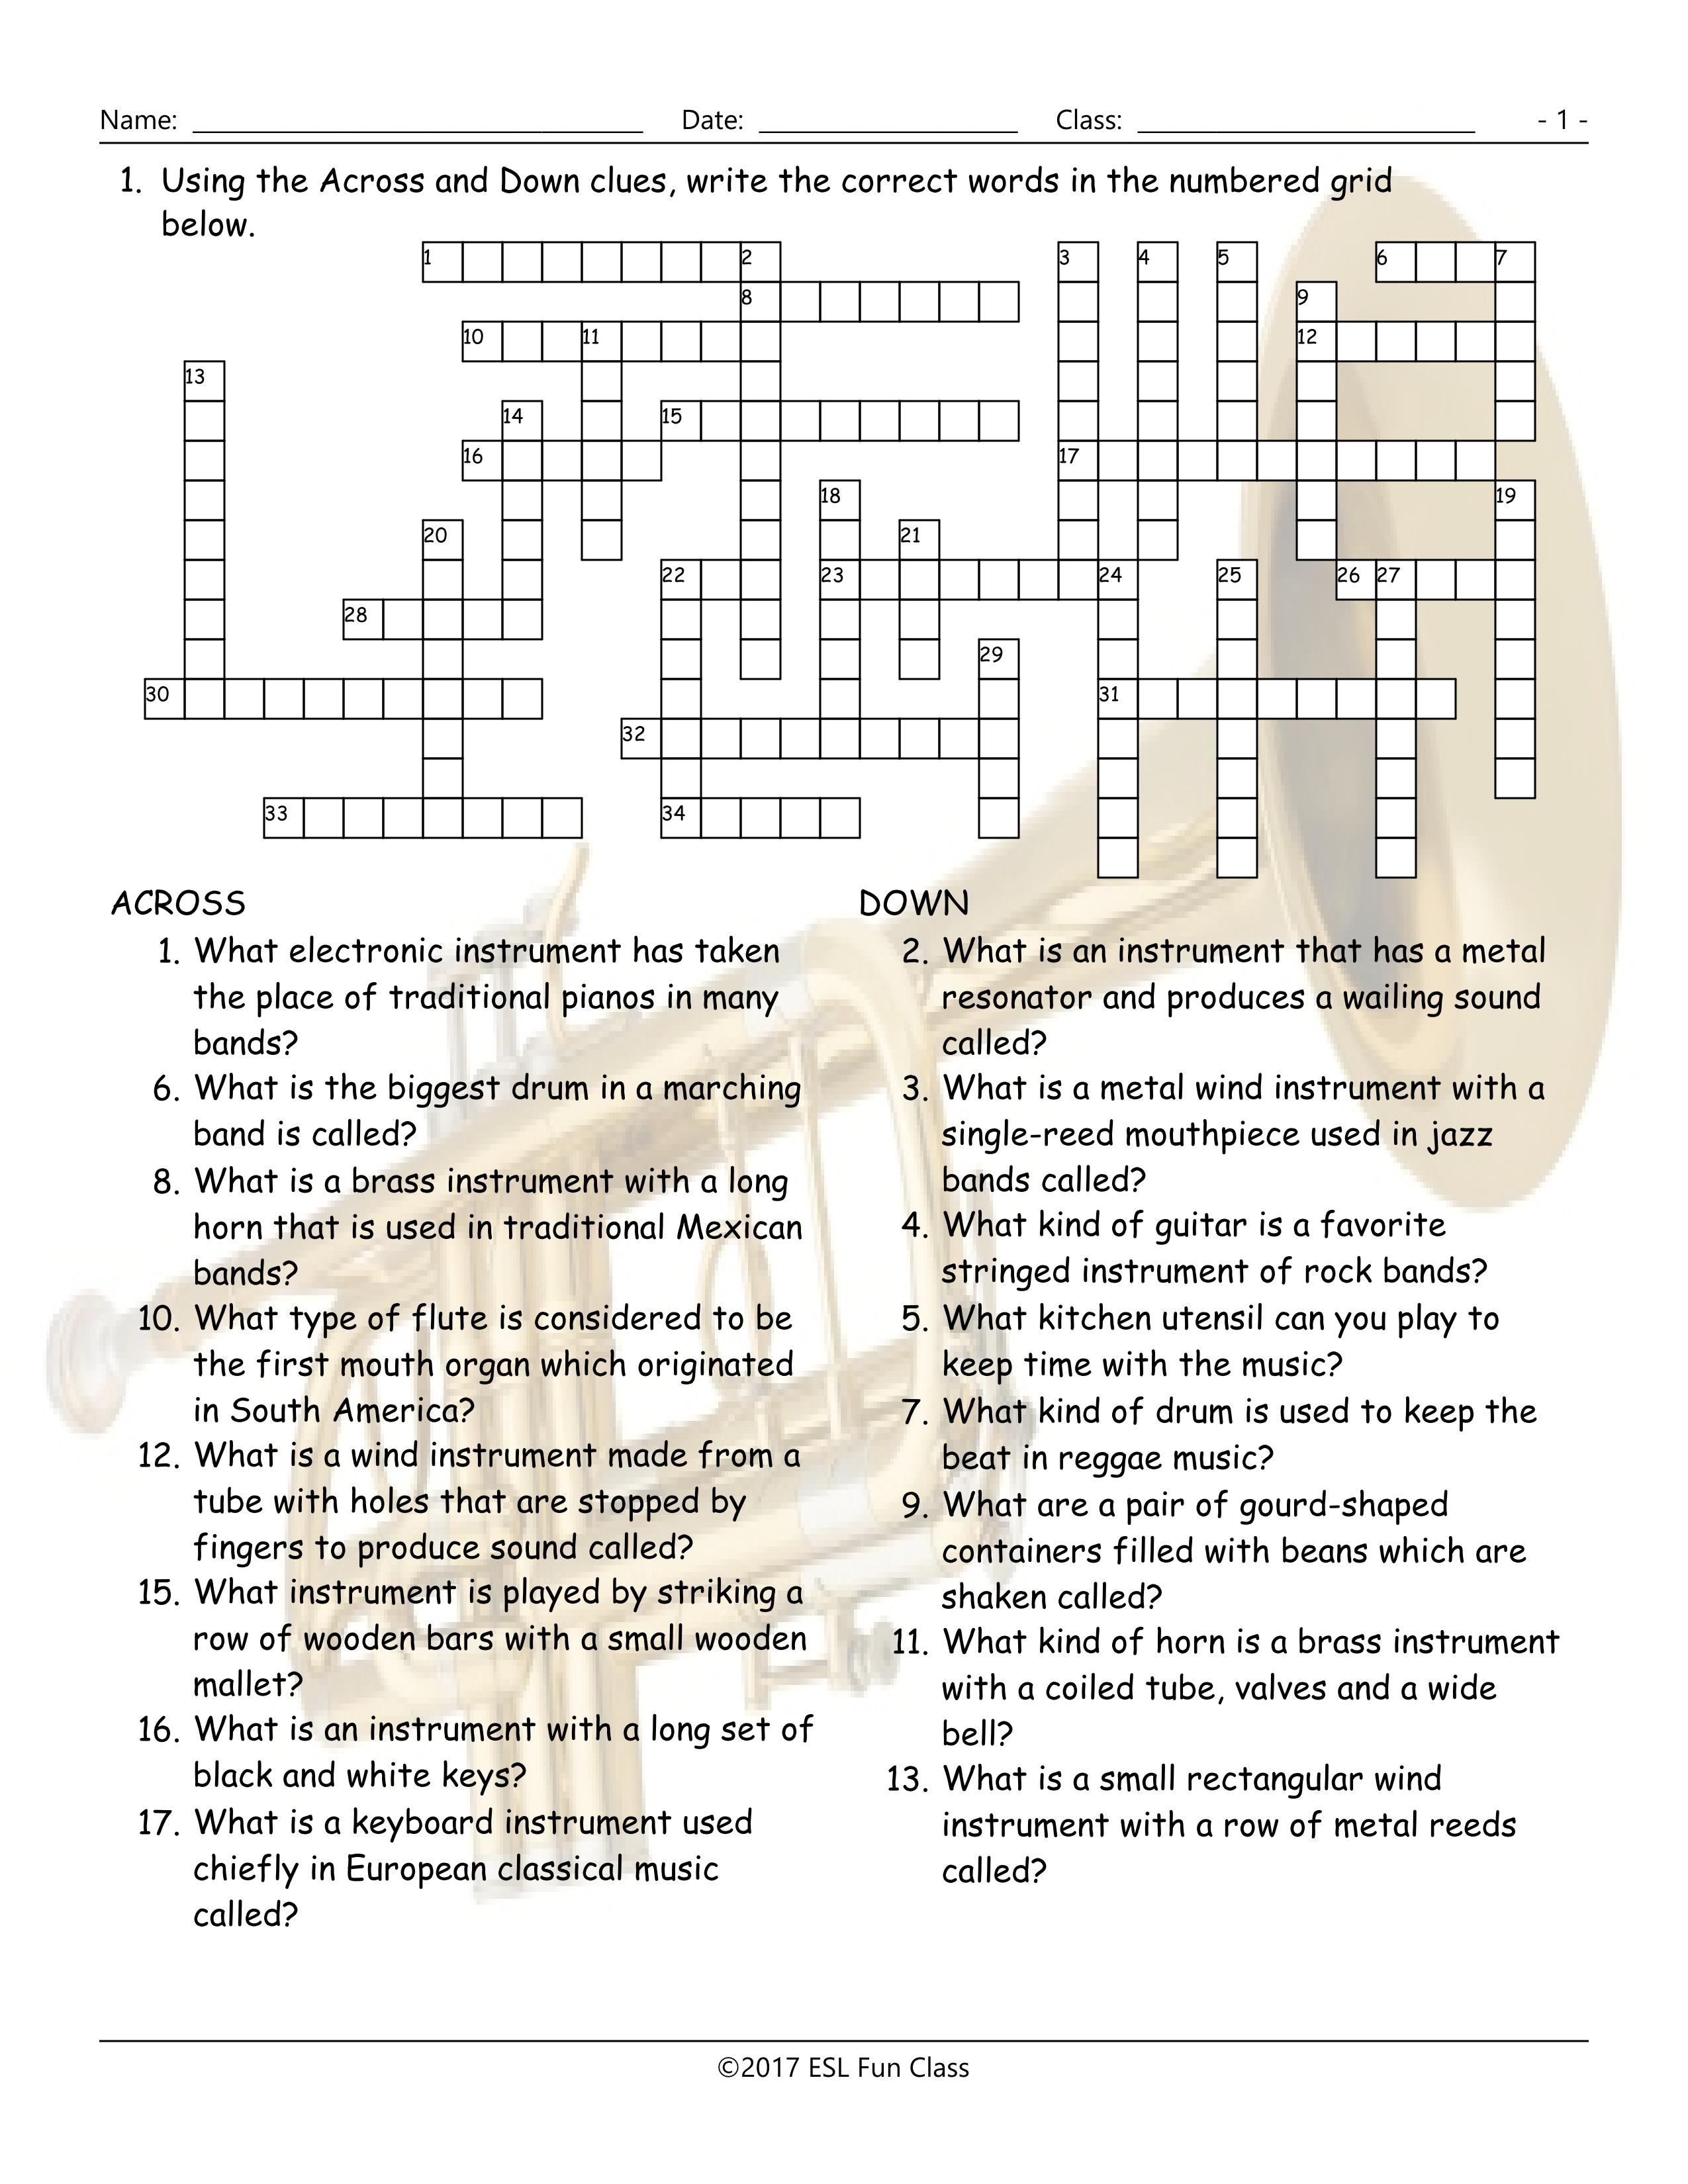 Musical Instruments Crossword Puzzle Worksheet-Esl Fun Games-Have Fun! - Vocabulary Crossword Puzzle Printable